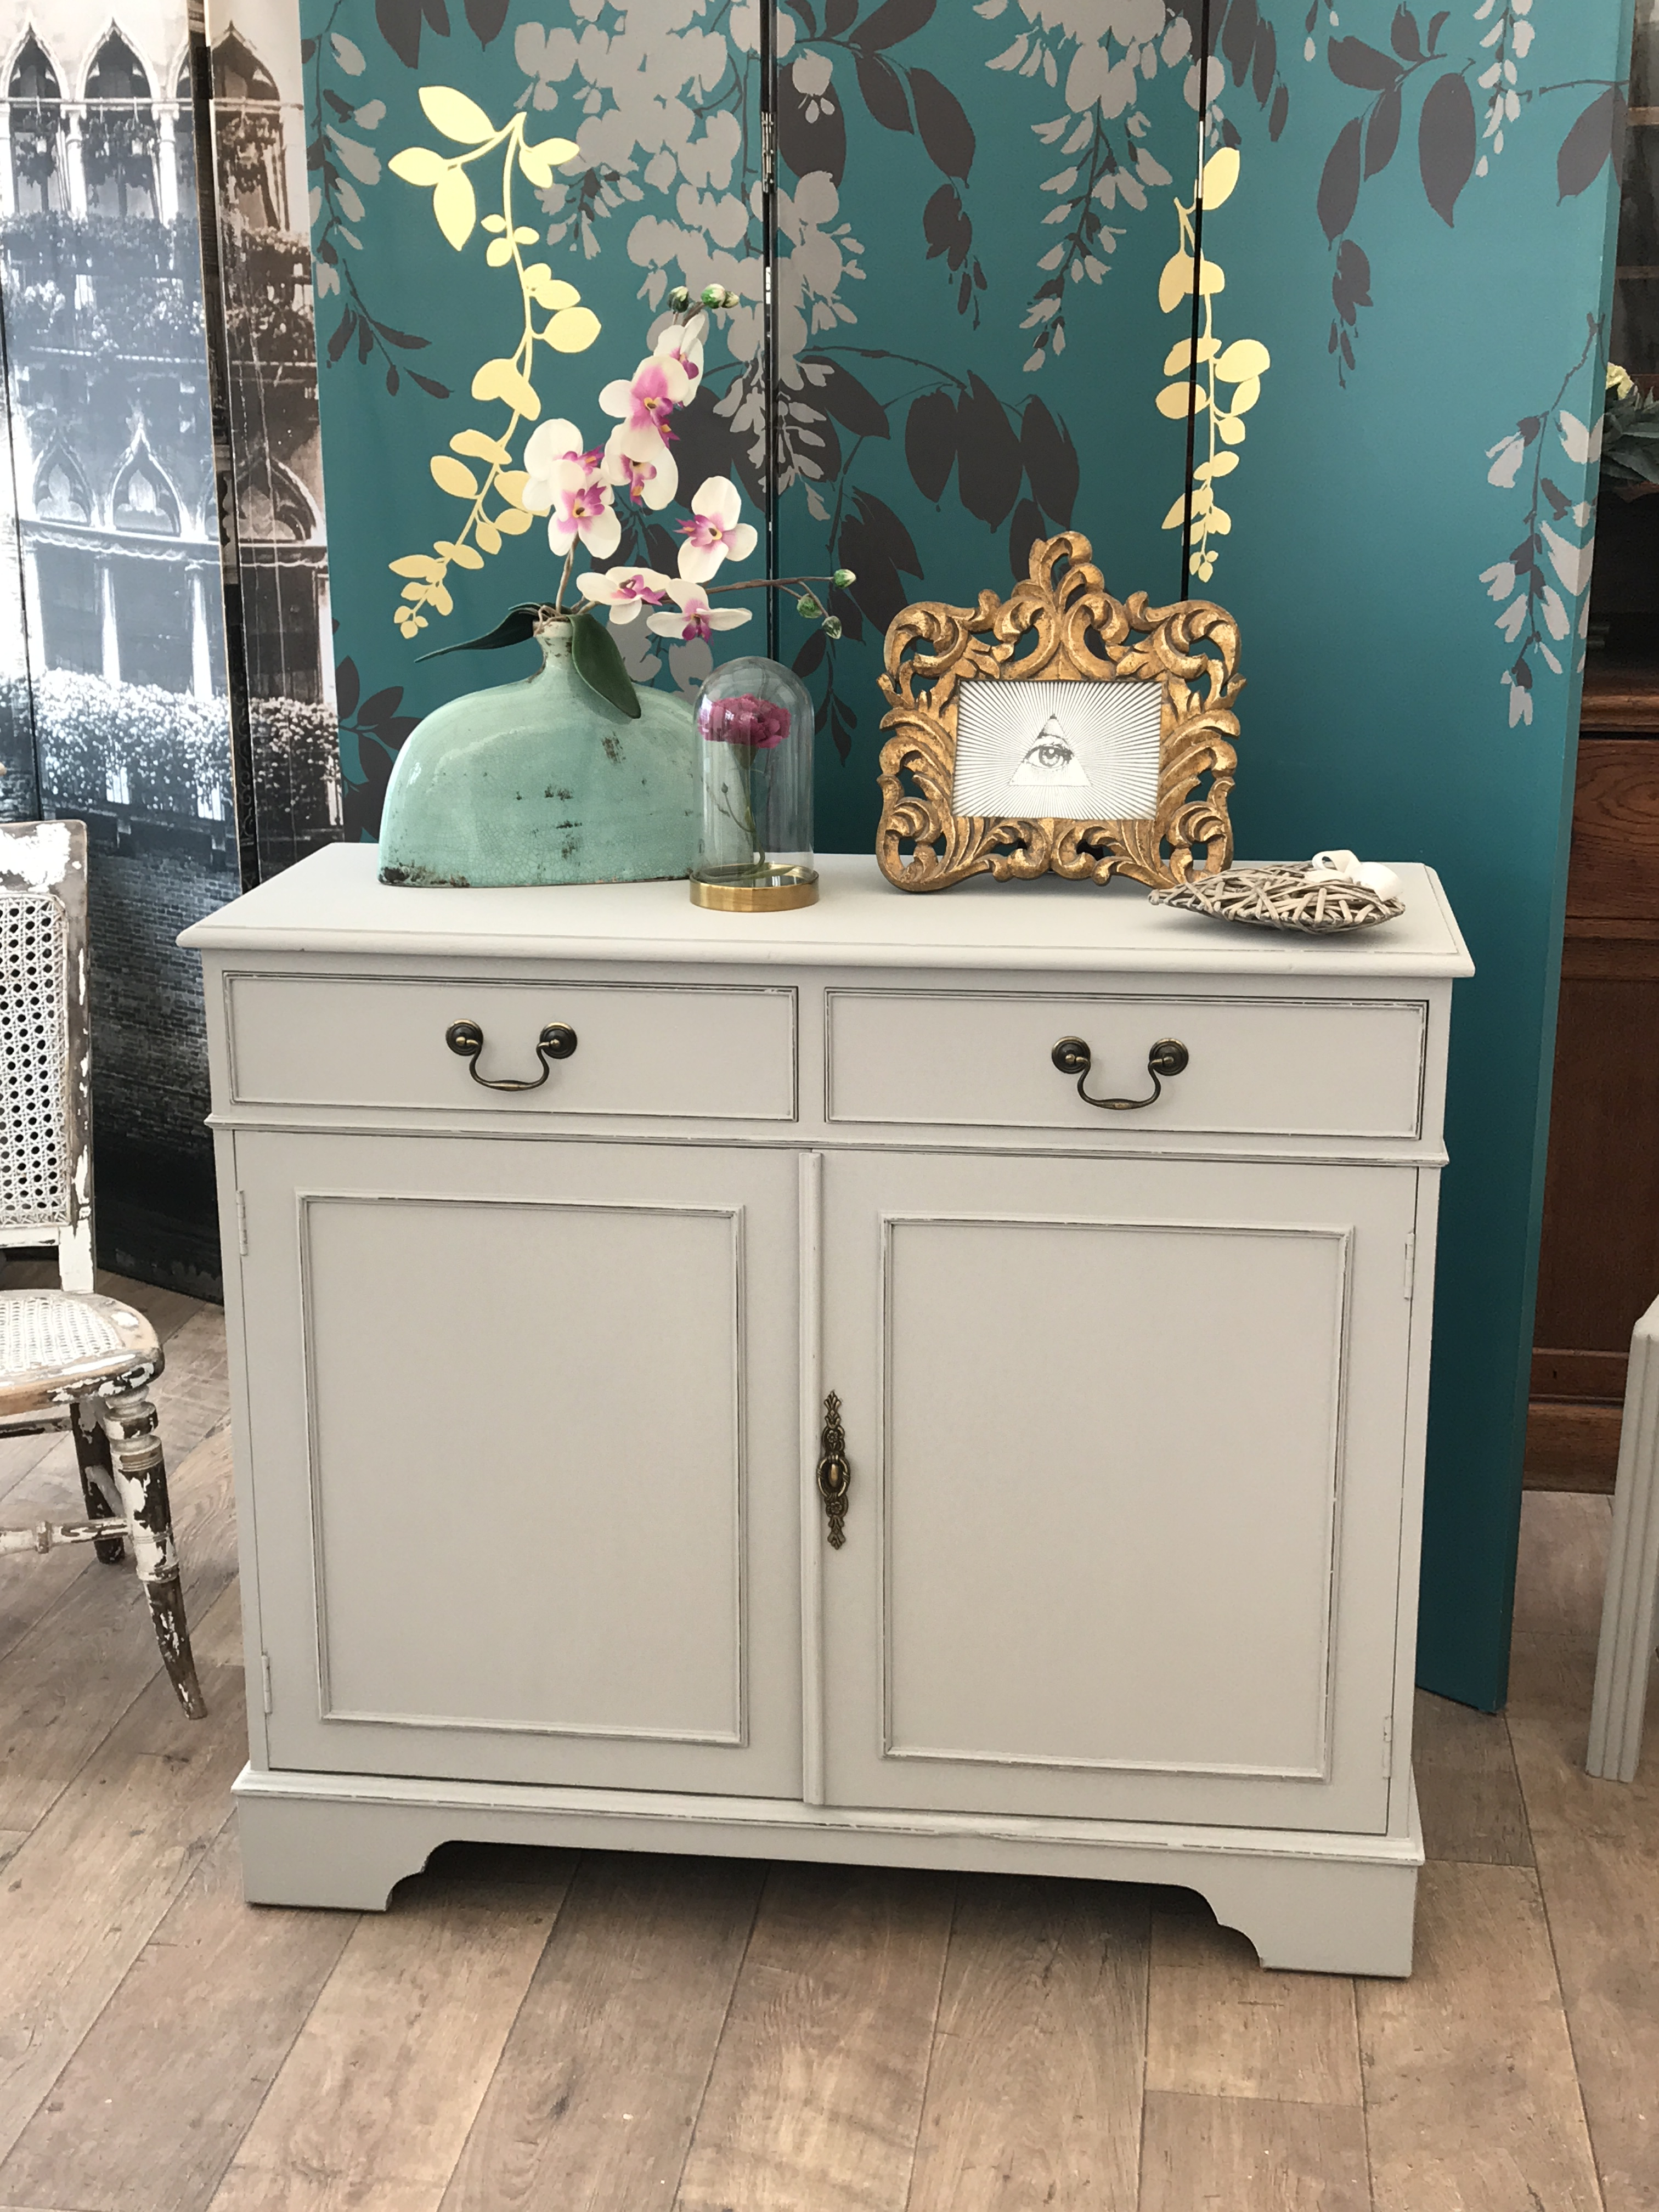 Shabby Chic Furniture – What Is It?